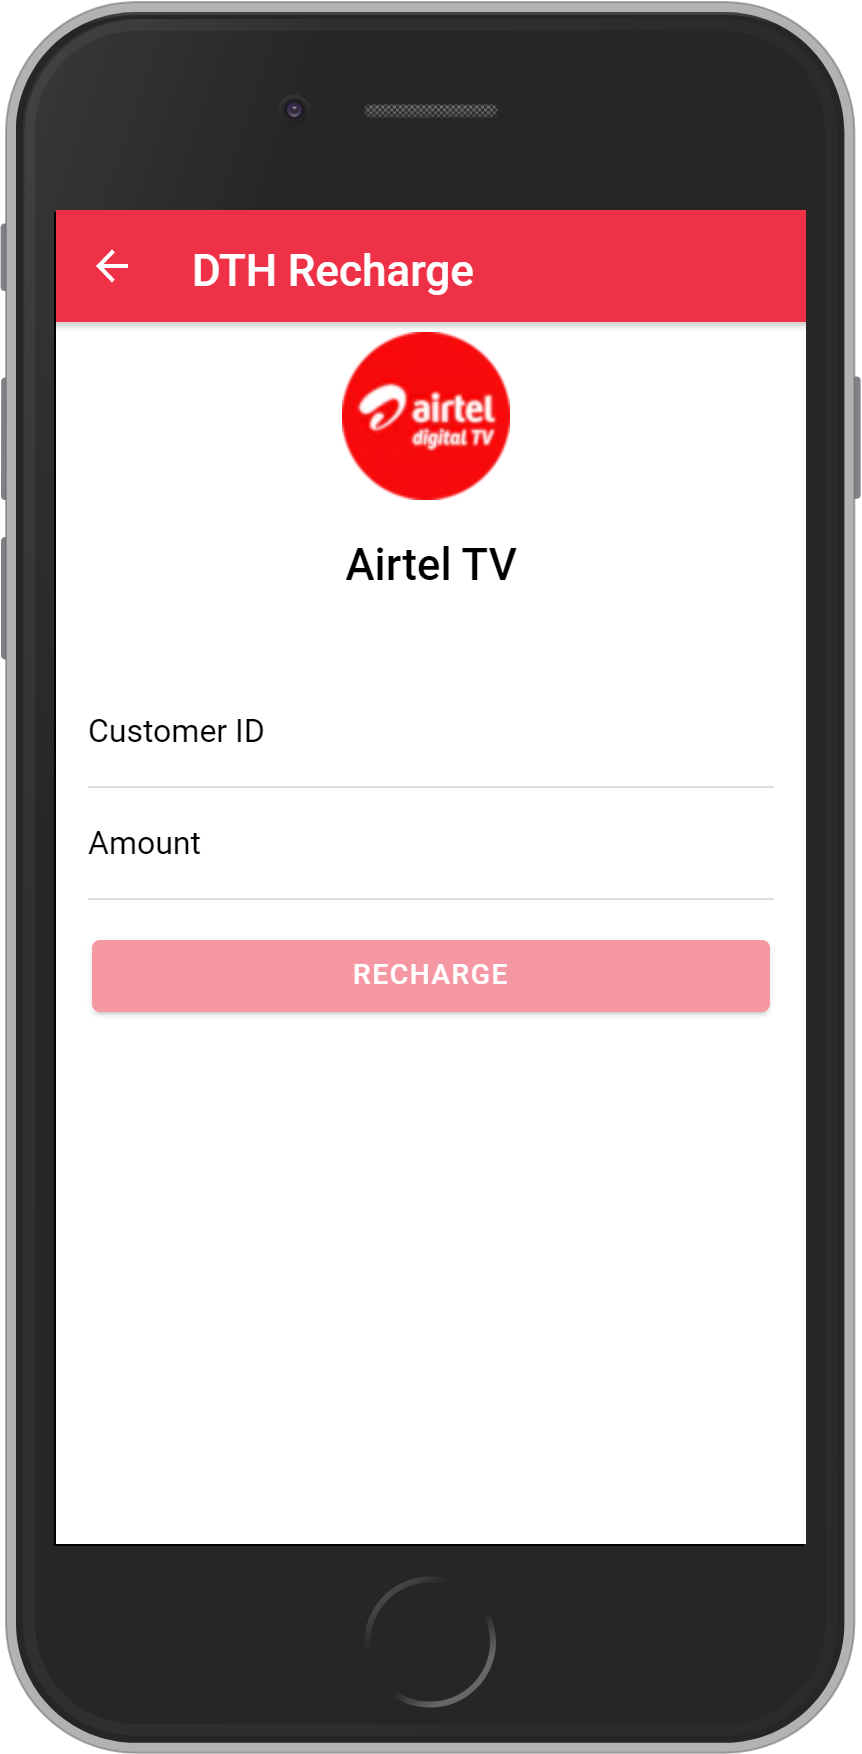 Get UNLIMITED <b>4%</b> CASHBACK on Airtel DTH Recharges.